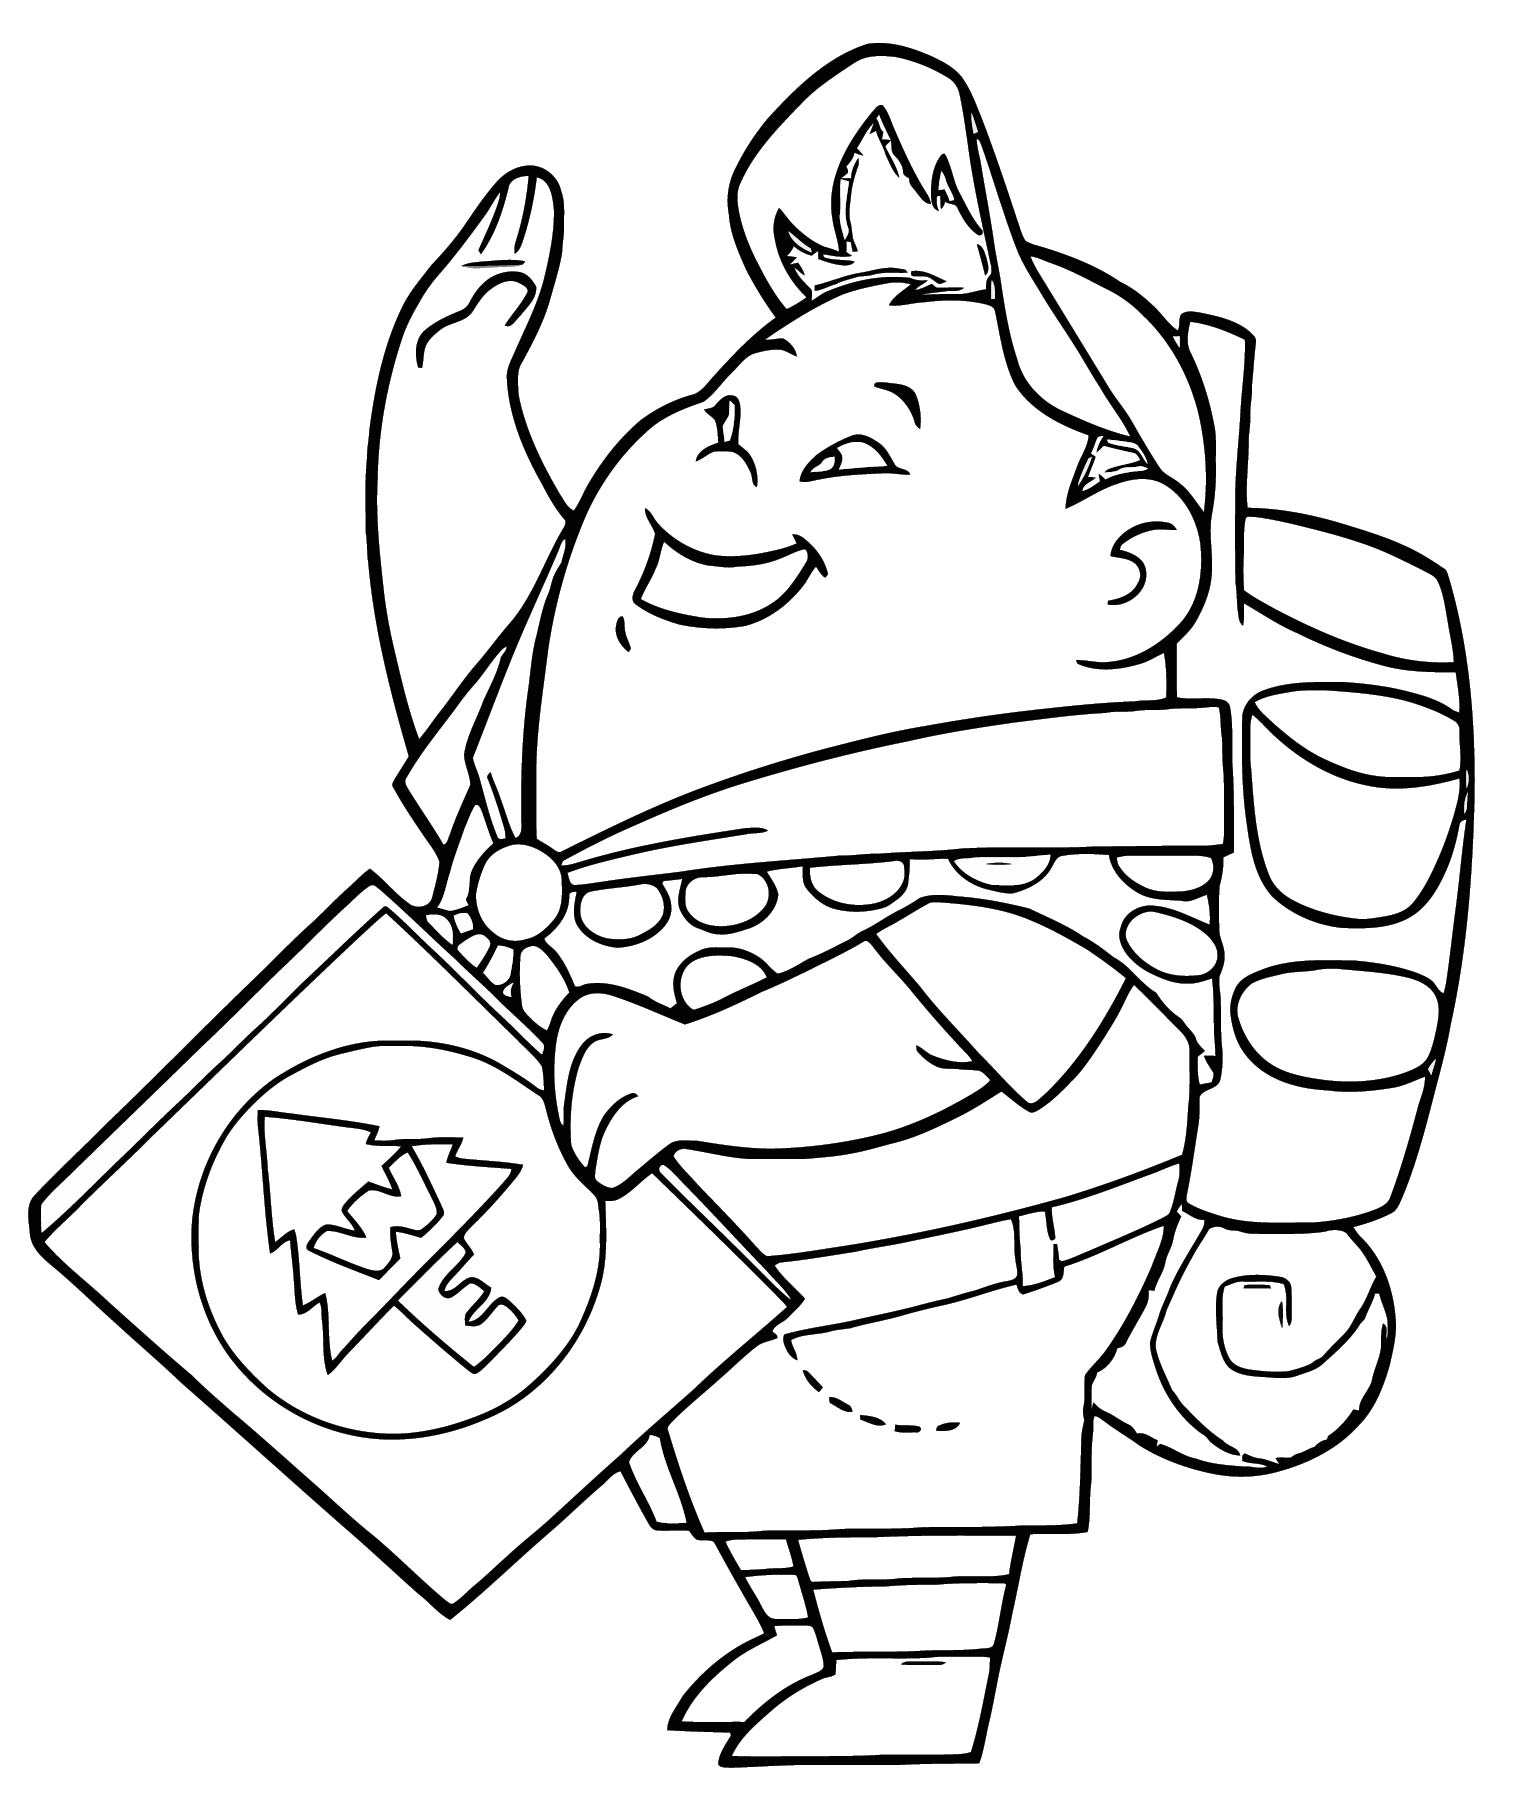 disney up coloring pages - photo#20